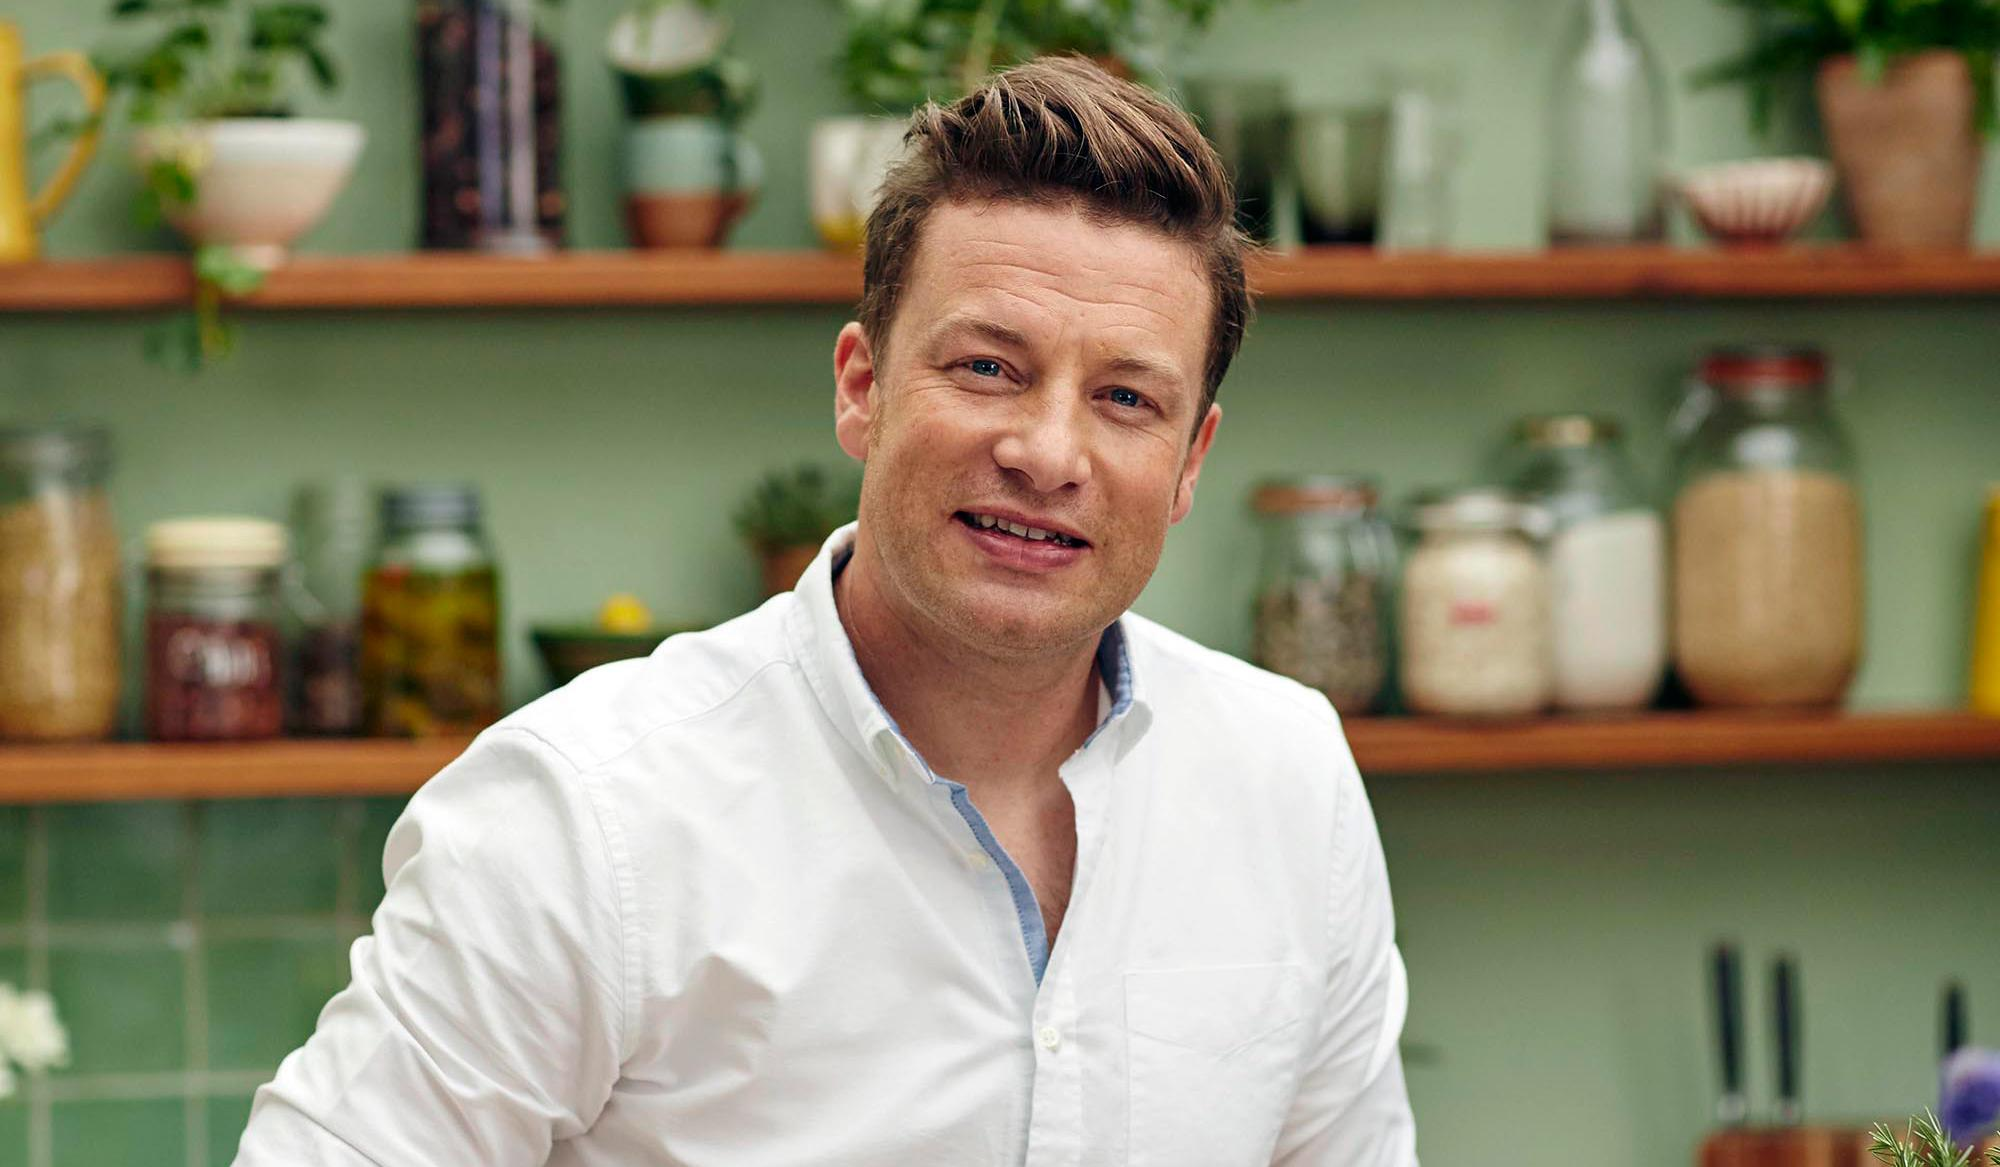 jamie oliver to shut six jamie 39 s italian restaurants amid 39 tough trading 39 after brexit the. Black Bedroom Furniture Sets. Home Design Ideas